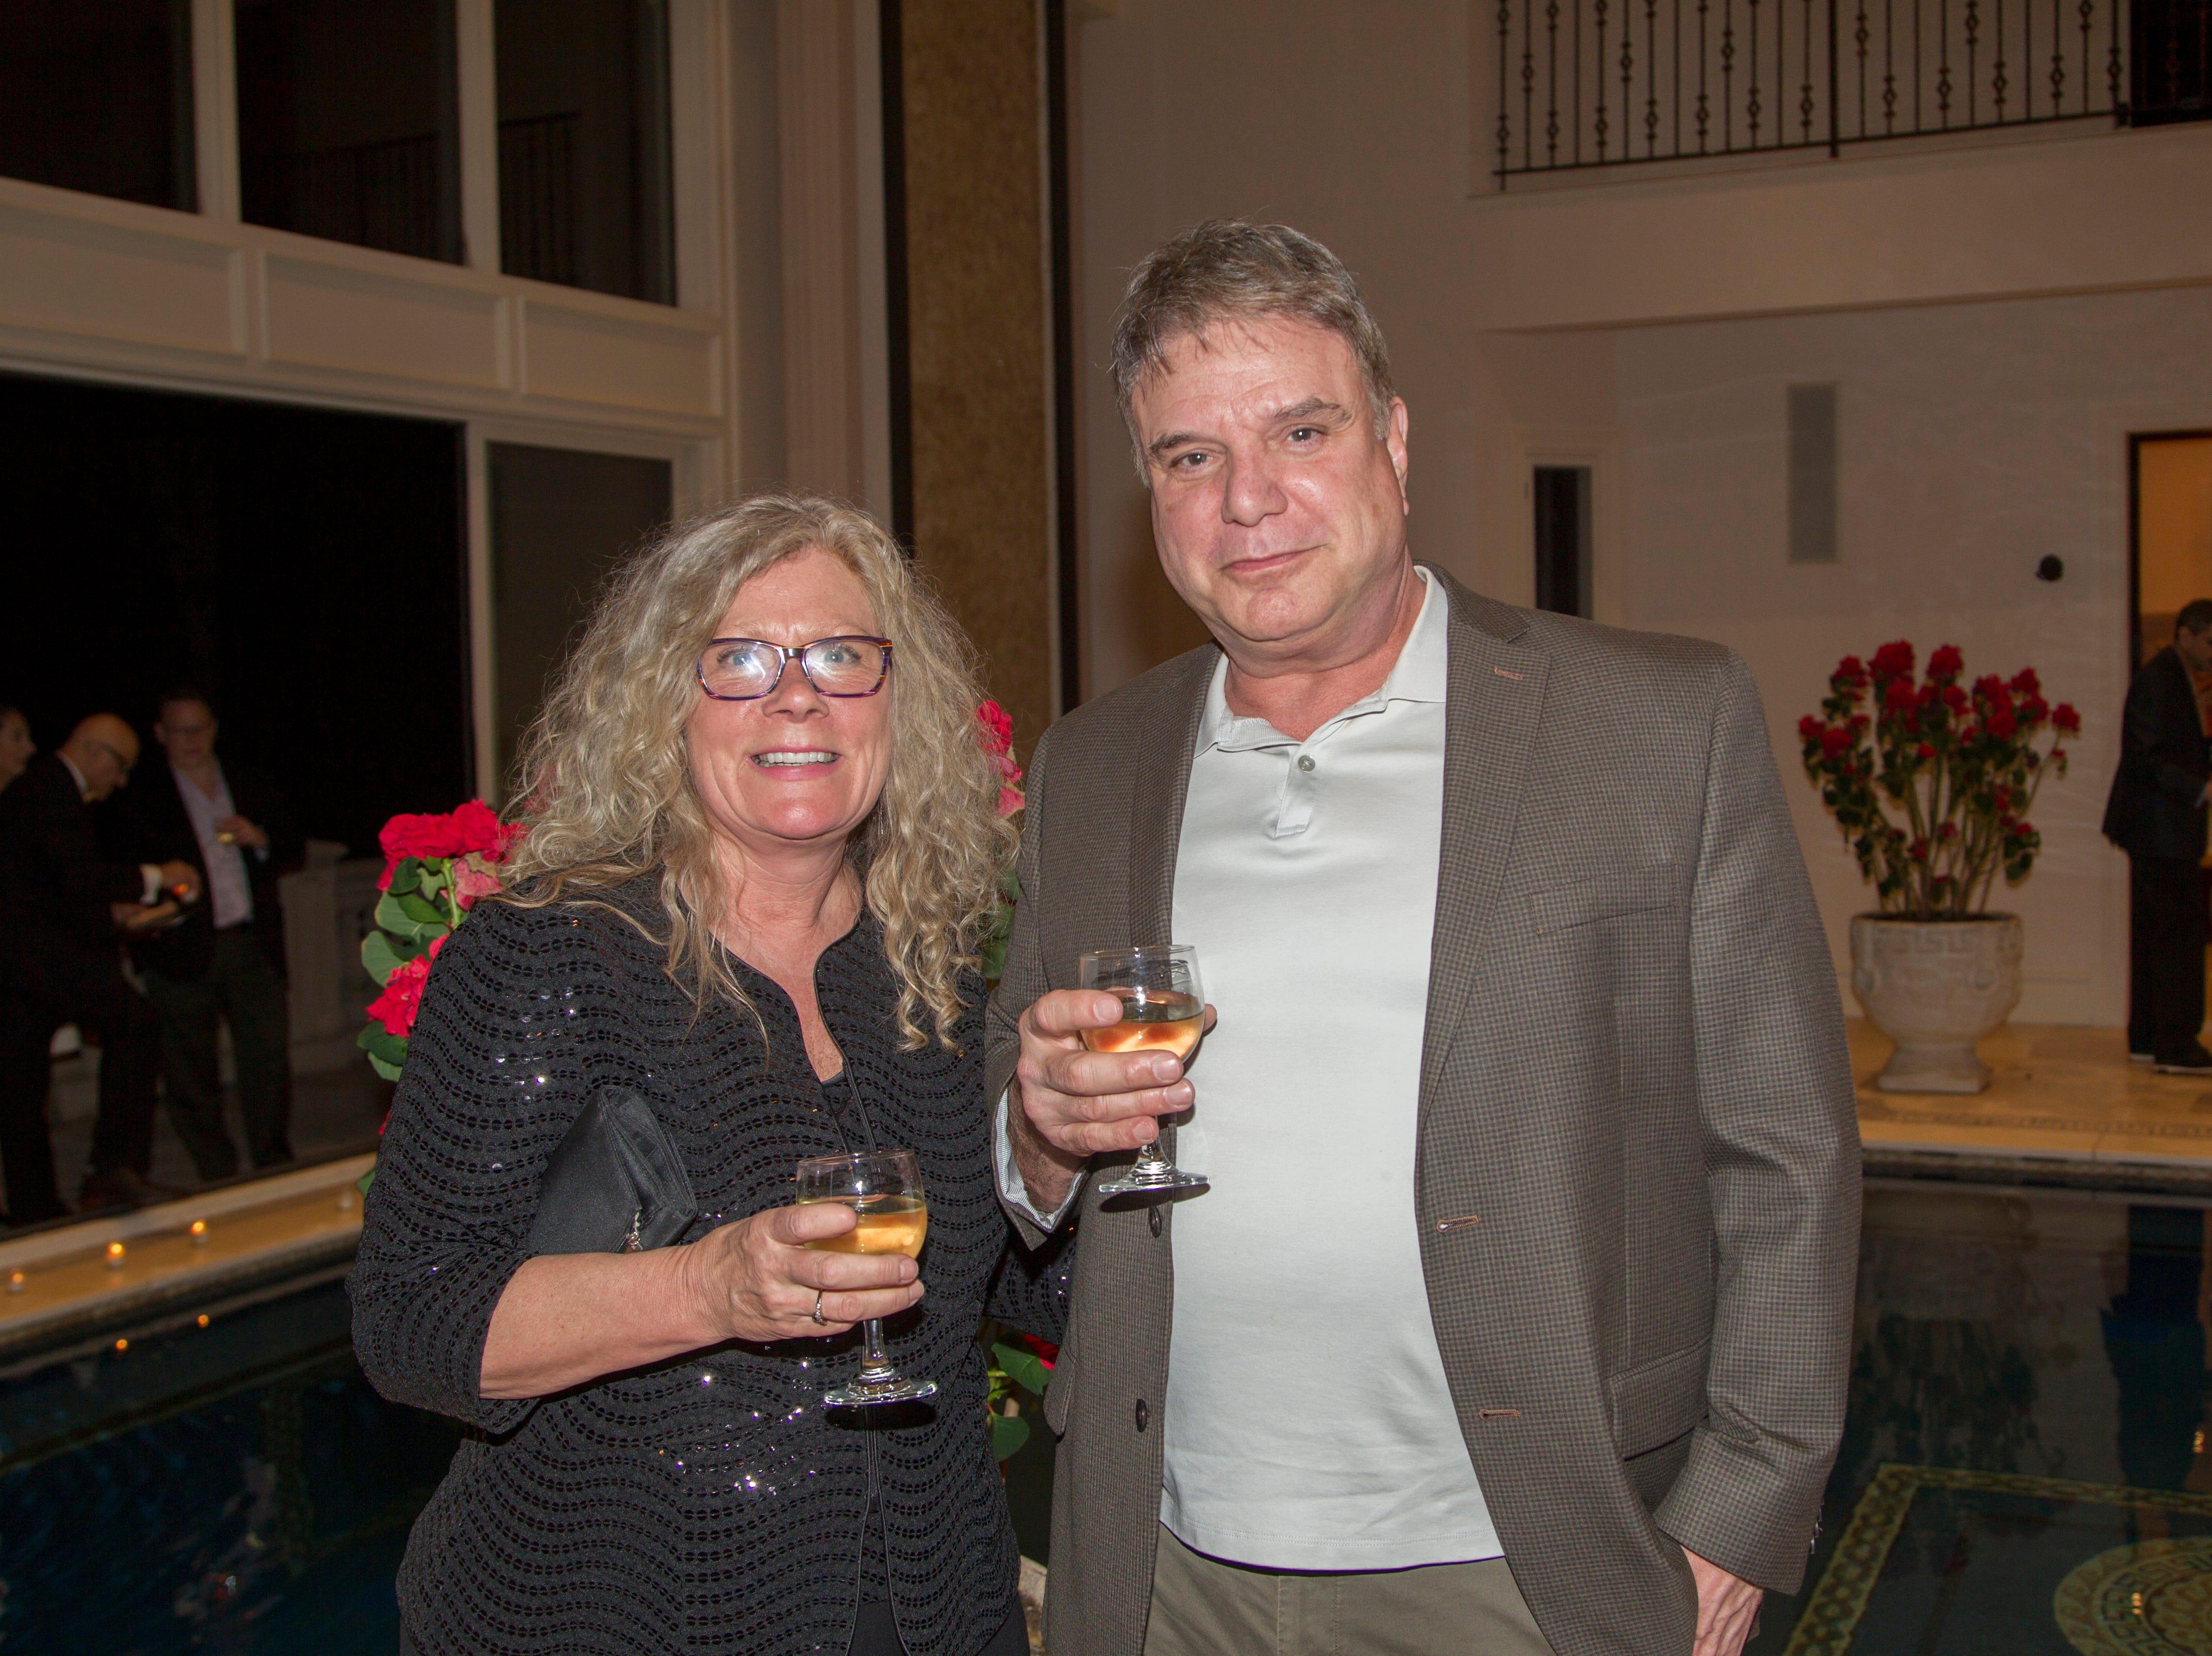 Kathy Donaghue, James Hallaway. Saddle River Arts Council presents An Evening of Giving Back featureing Eric Genuis in Saddle River. 03/30/2019